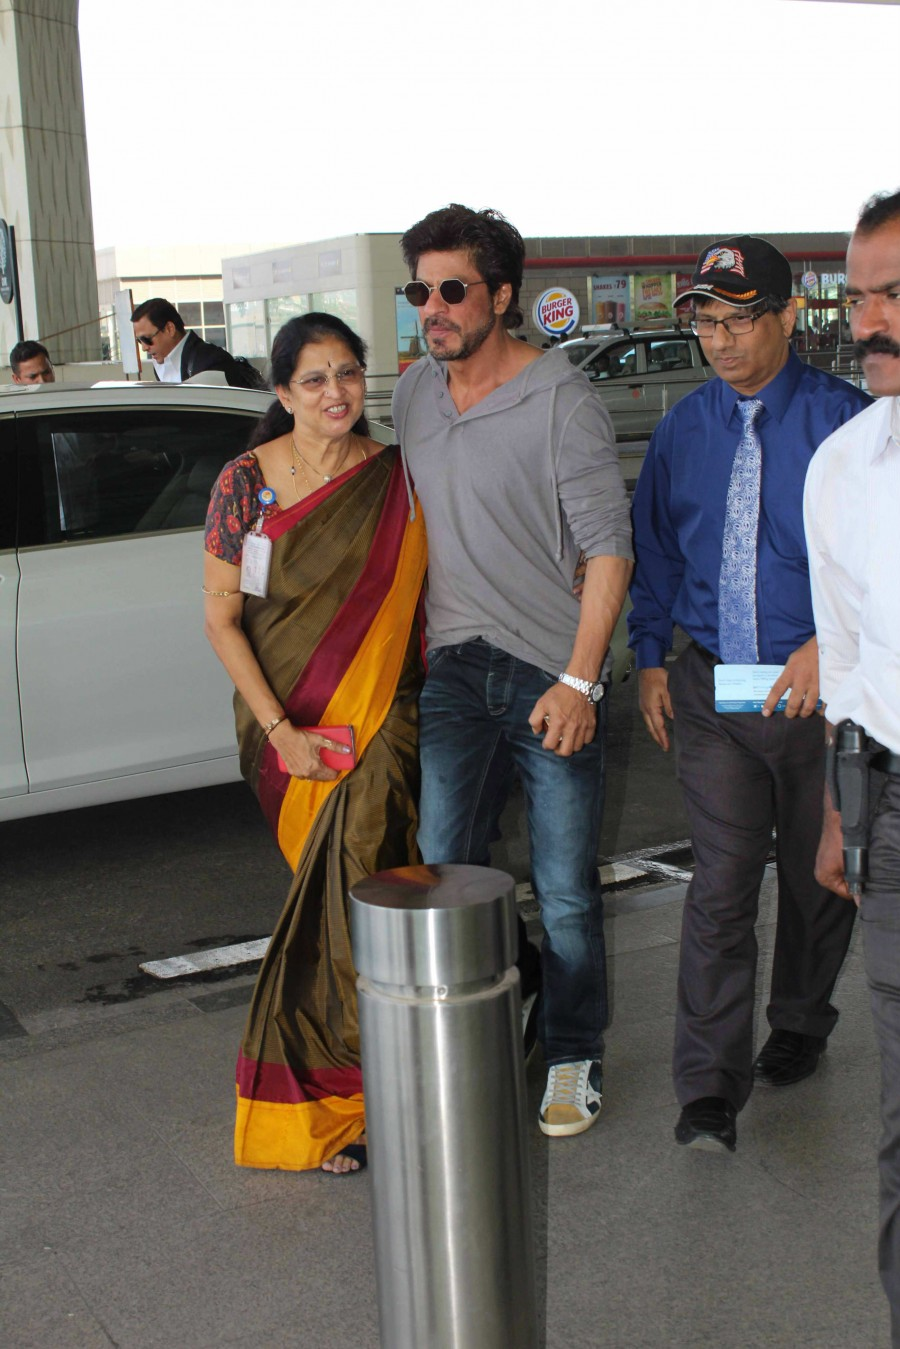 Shah Rukh Khan,Aishwarya Rai,Sanjay Dutt,Kajol,Radhika Apte,Shah Rukh Khan at Mumbai Airport,Aishwarya Rai at Mumbai Airport,Sanjay Dutt at Mumbai Airport,Radhika Apte at Mumbai Airport,Kajol at Mumbai Airport